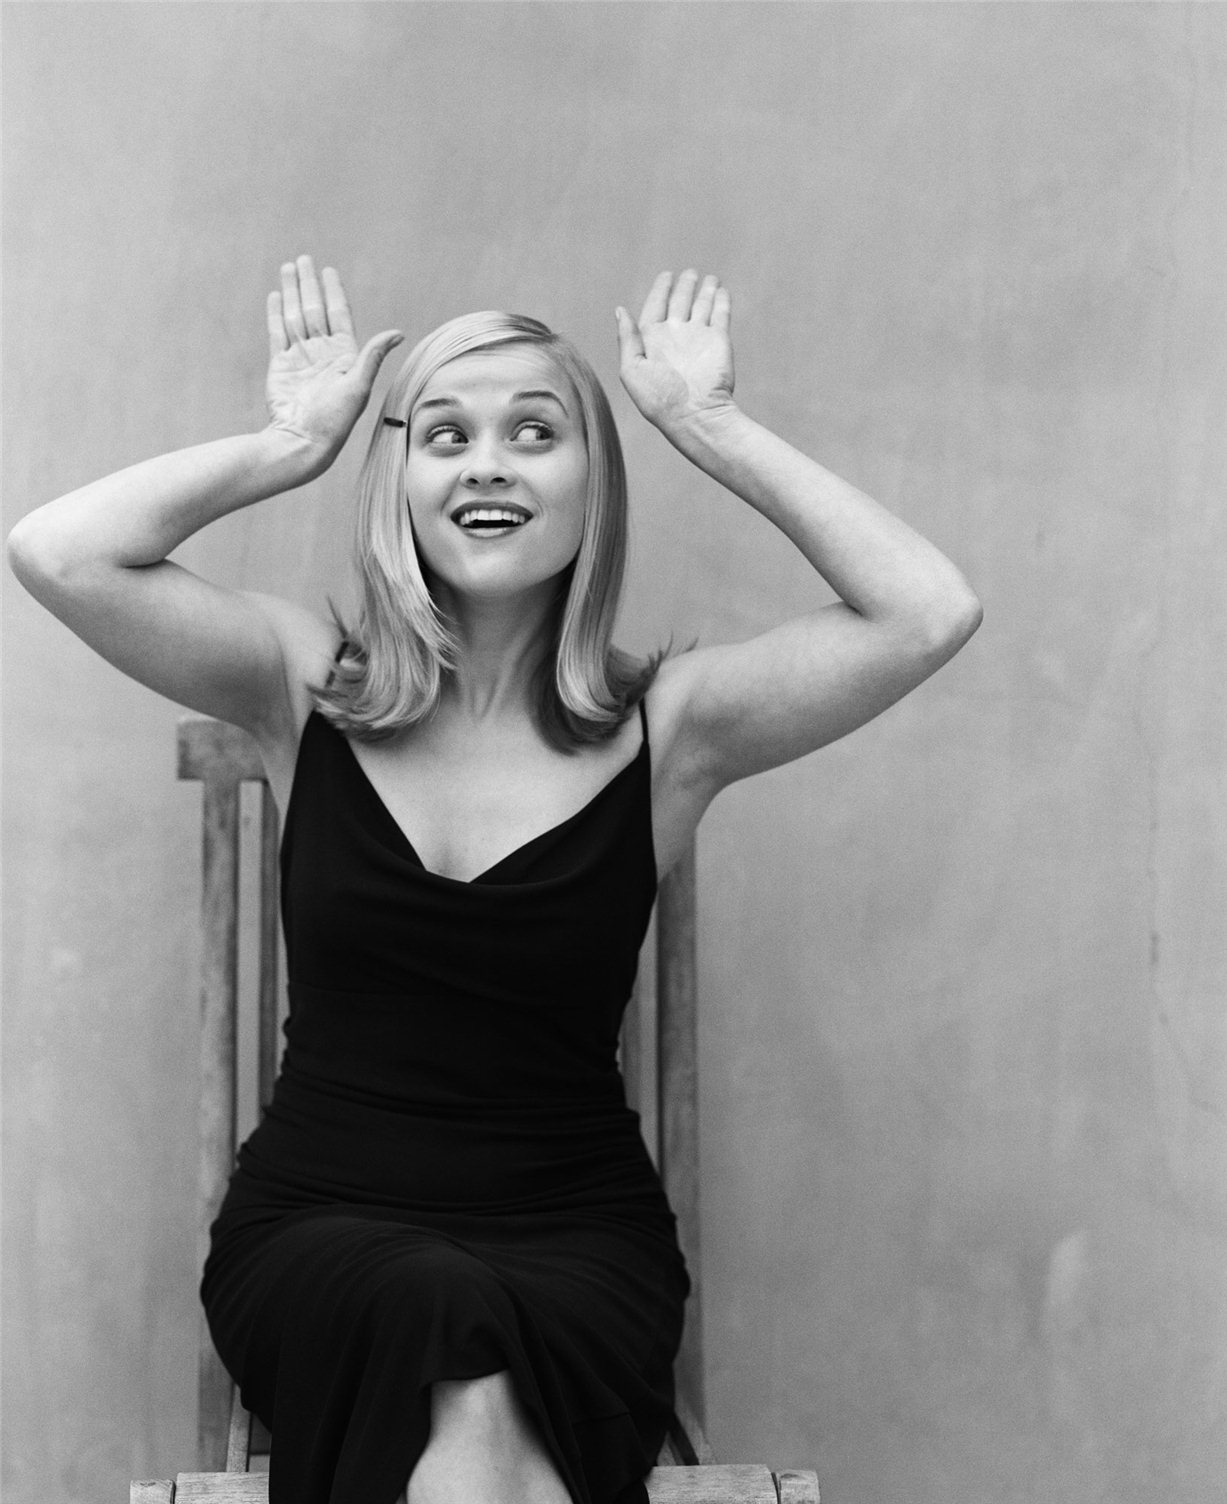 Reese Witherspoon / Риз Уизерспун - звезды Голливуда, фотограф Firooz Zahedi